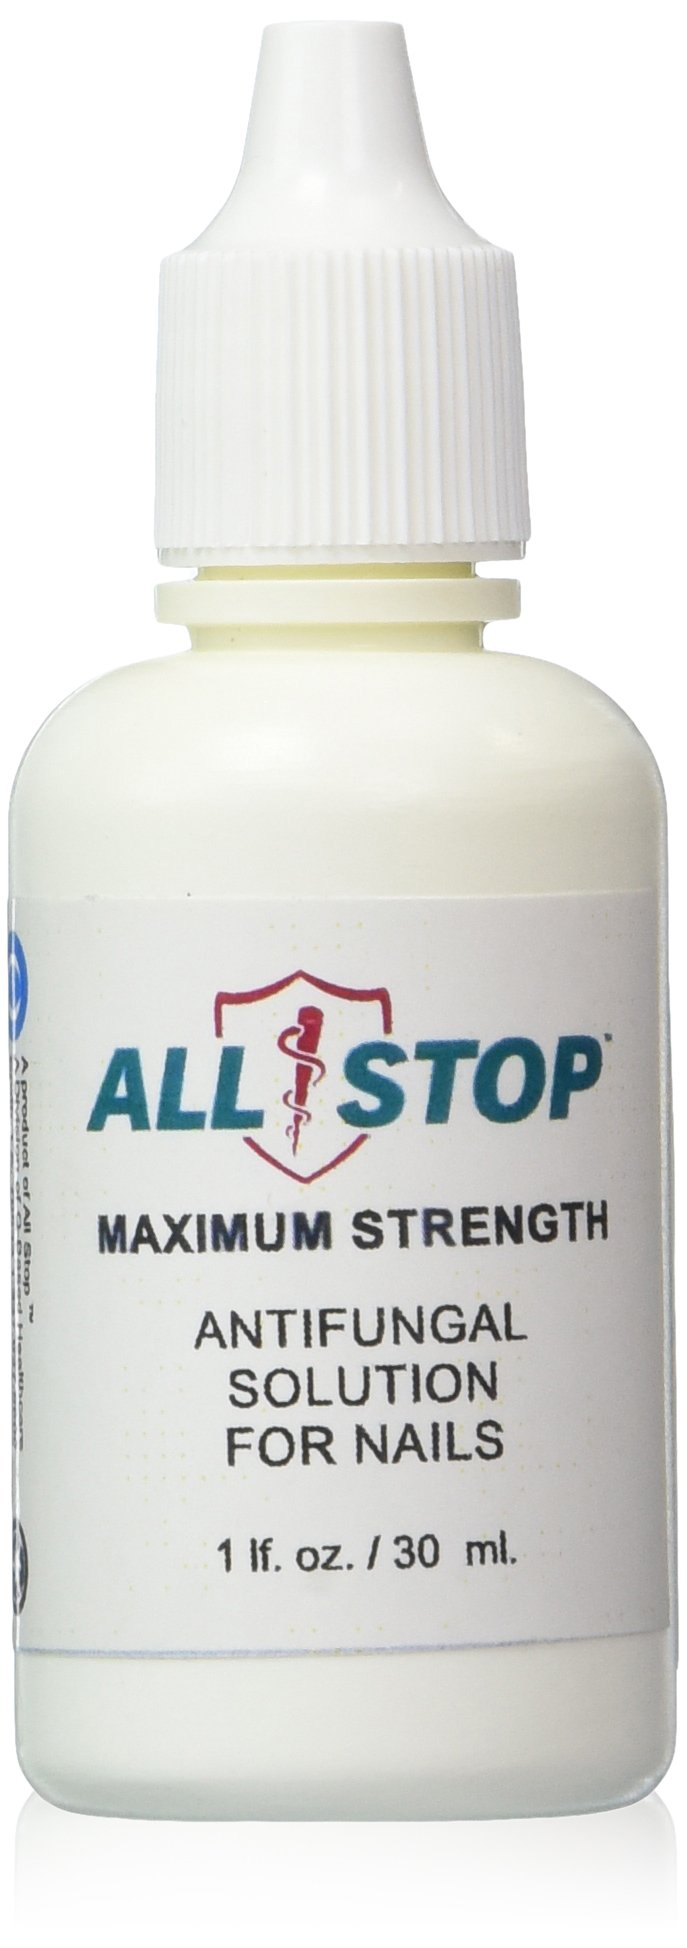 Antifungal Nail Fungus Treatment for Finger & Toe Nail- 1 fluid ounce by All Stop (Image #2)